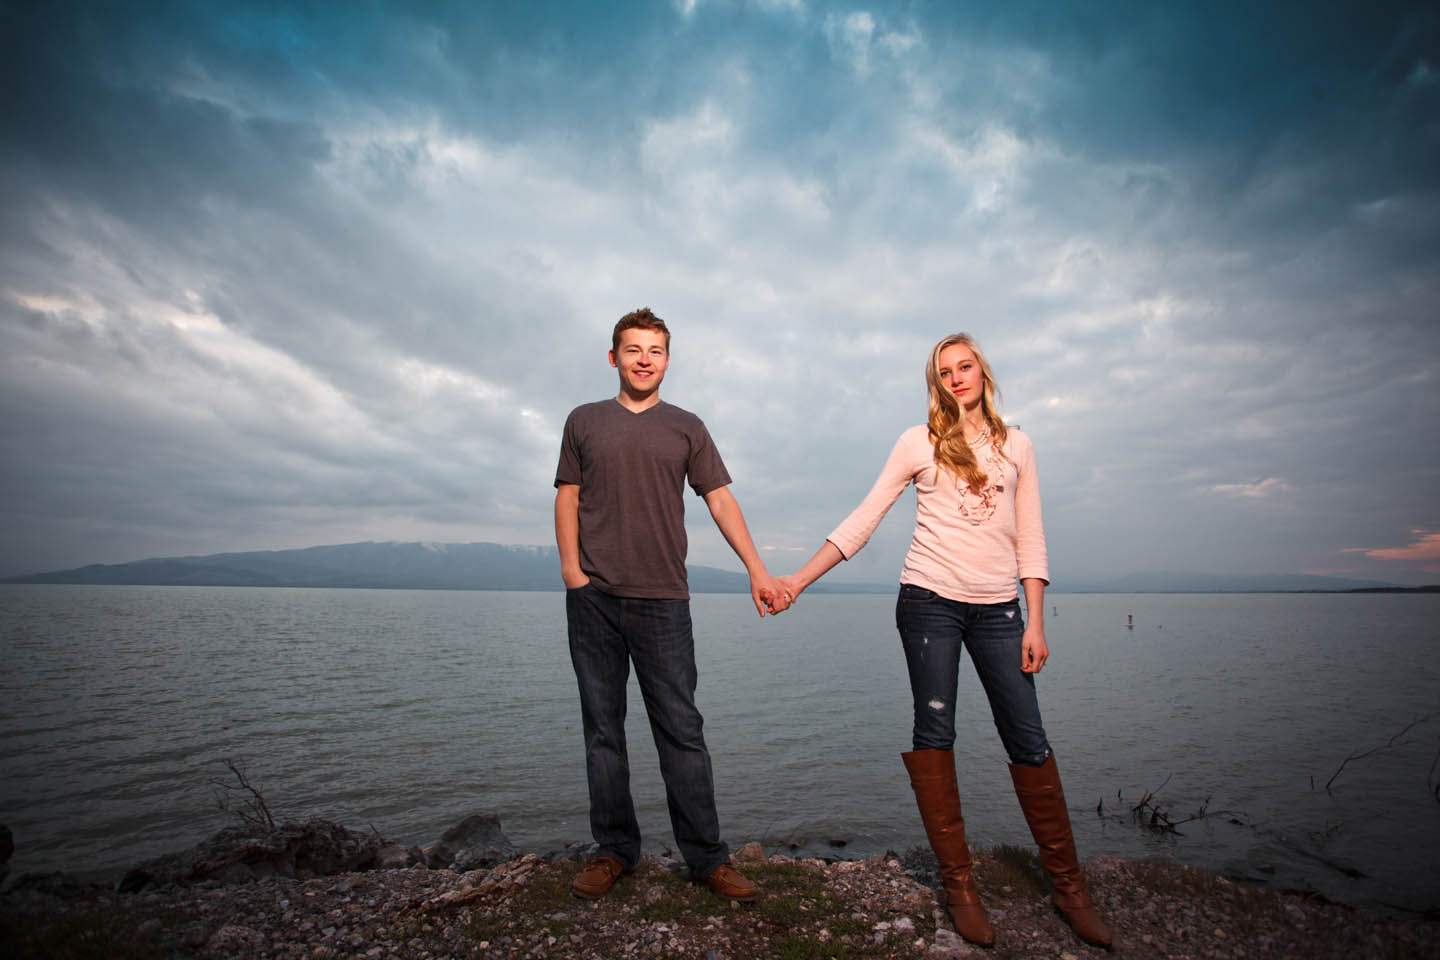 Overcast skies turn out great for portraits